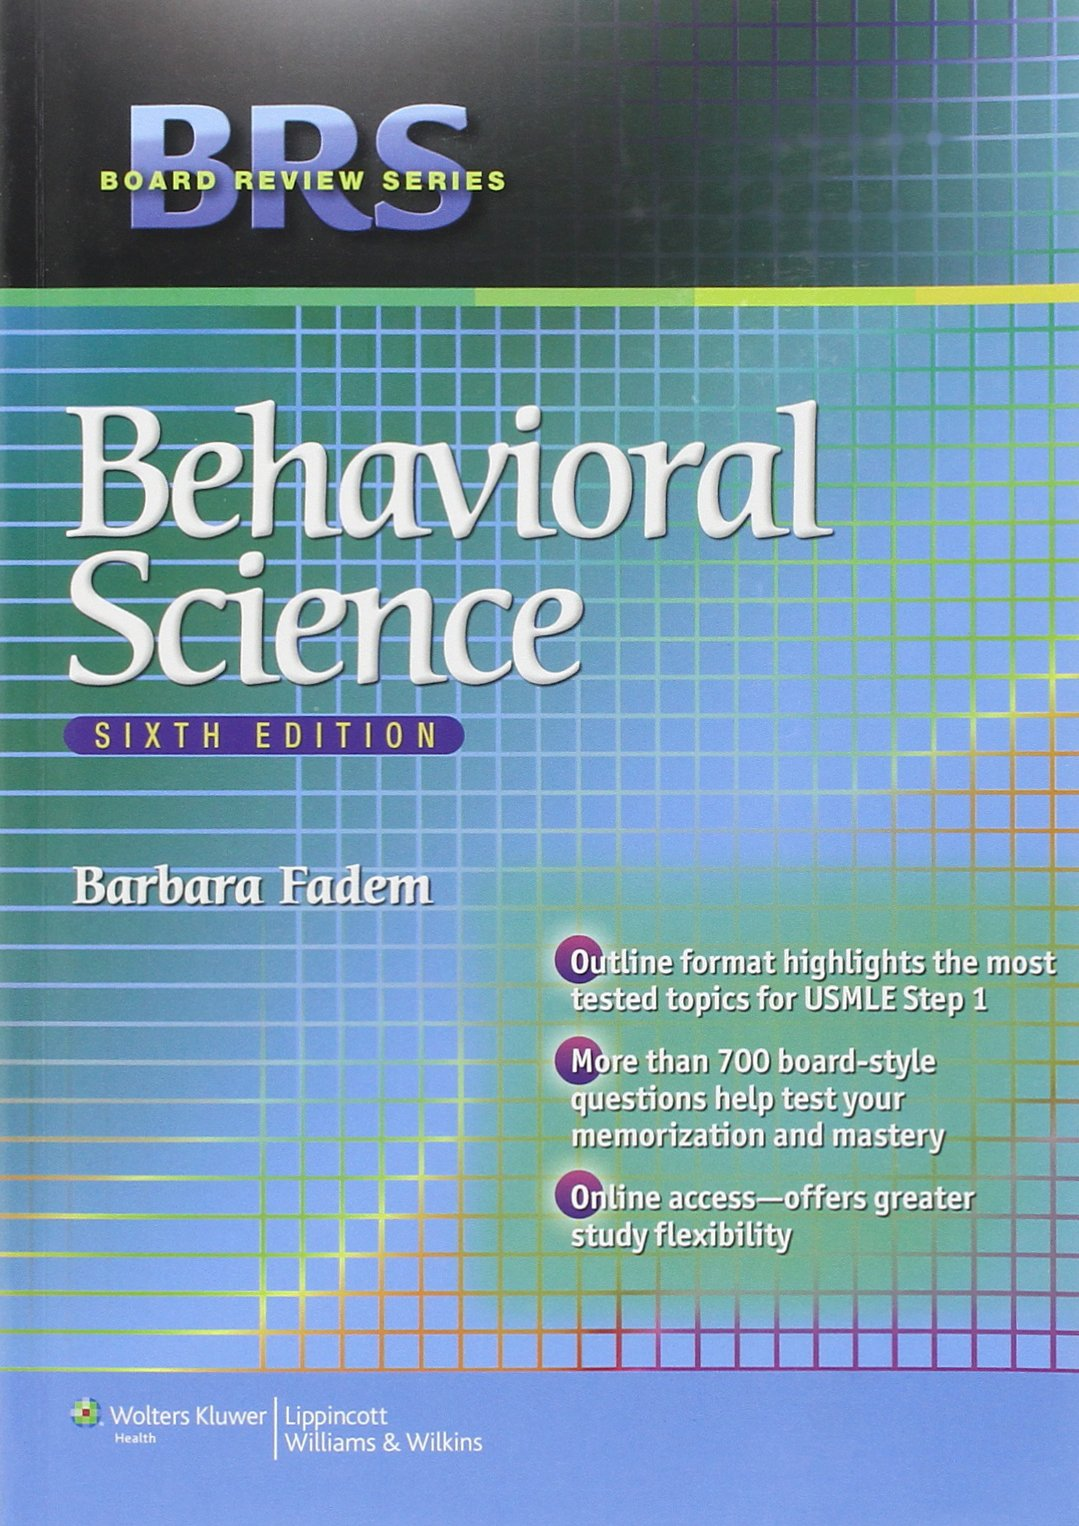 Buy Brs Behavioral Science Board Review Series Book Online At Low